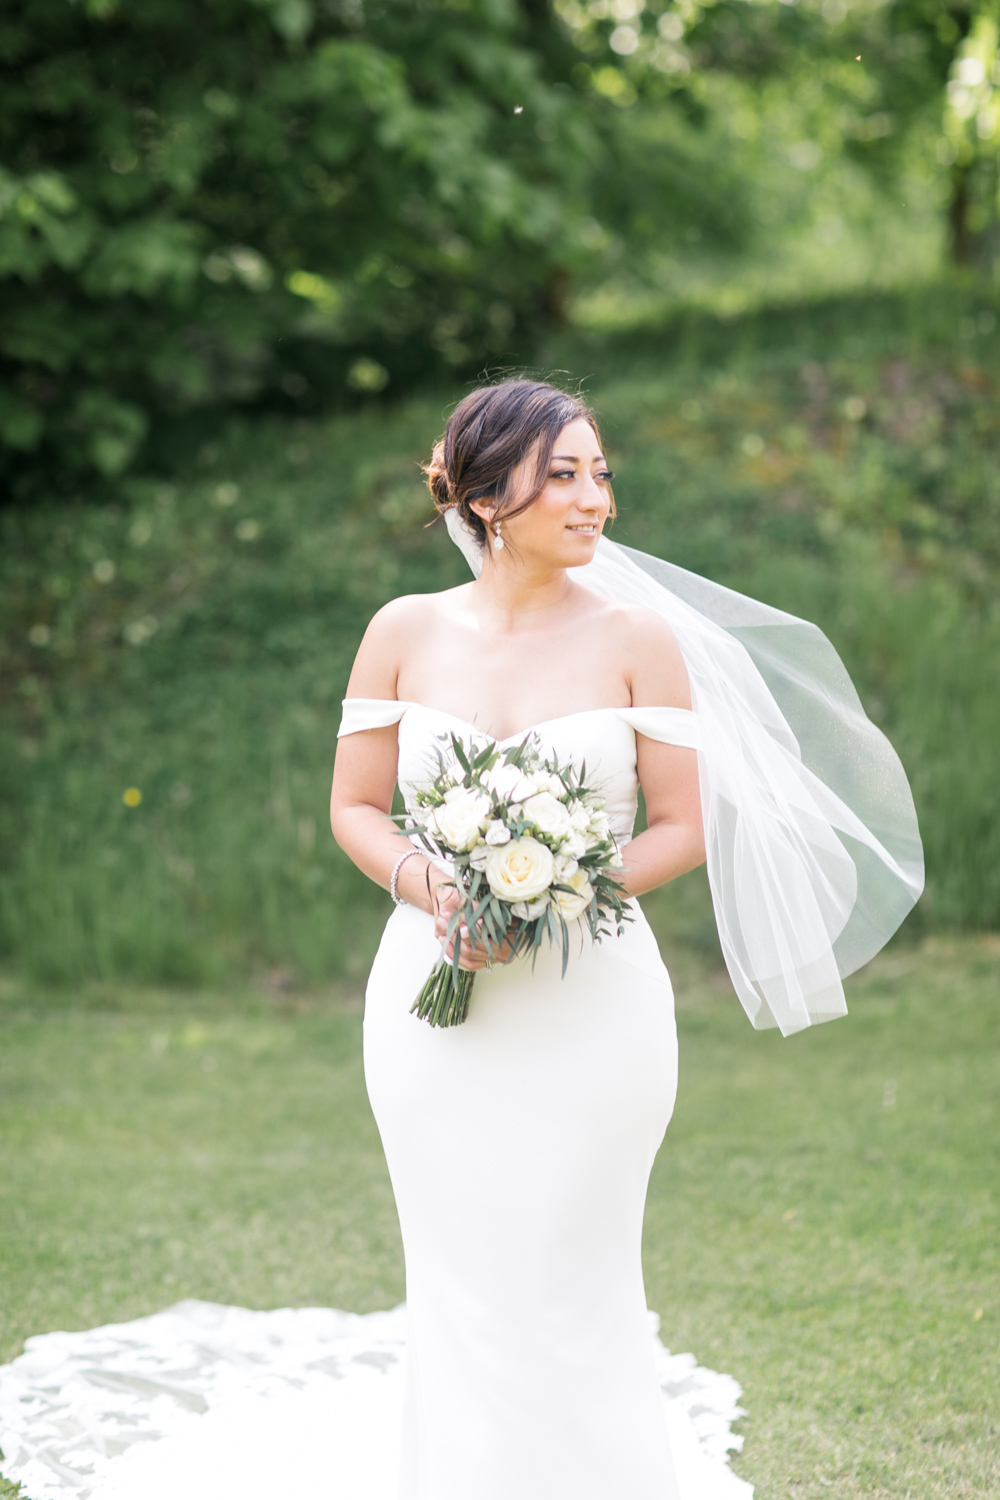 bride standing alone wearing a plain wedding dress with a large train and a short veil holding a white bouquet of wedding flowers